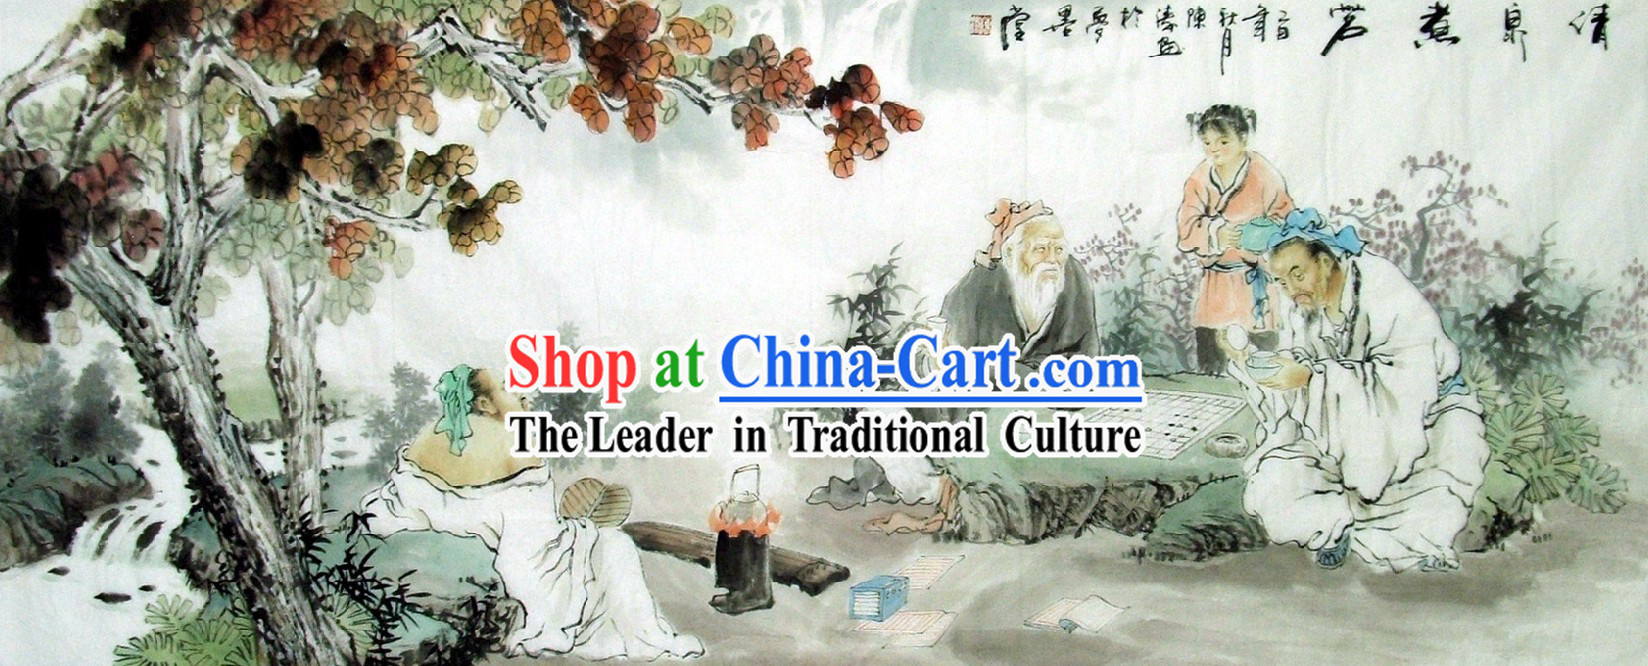 Traditional Chinese Figurine Painting by Chen Tao